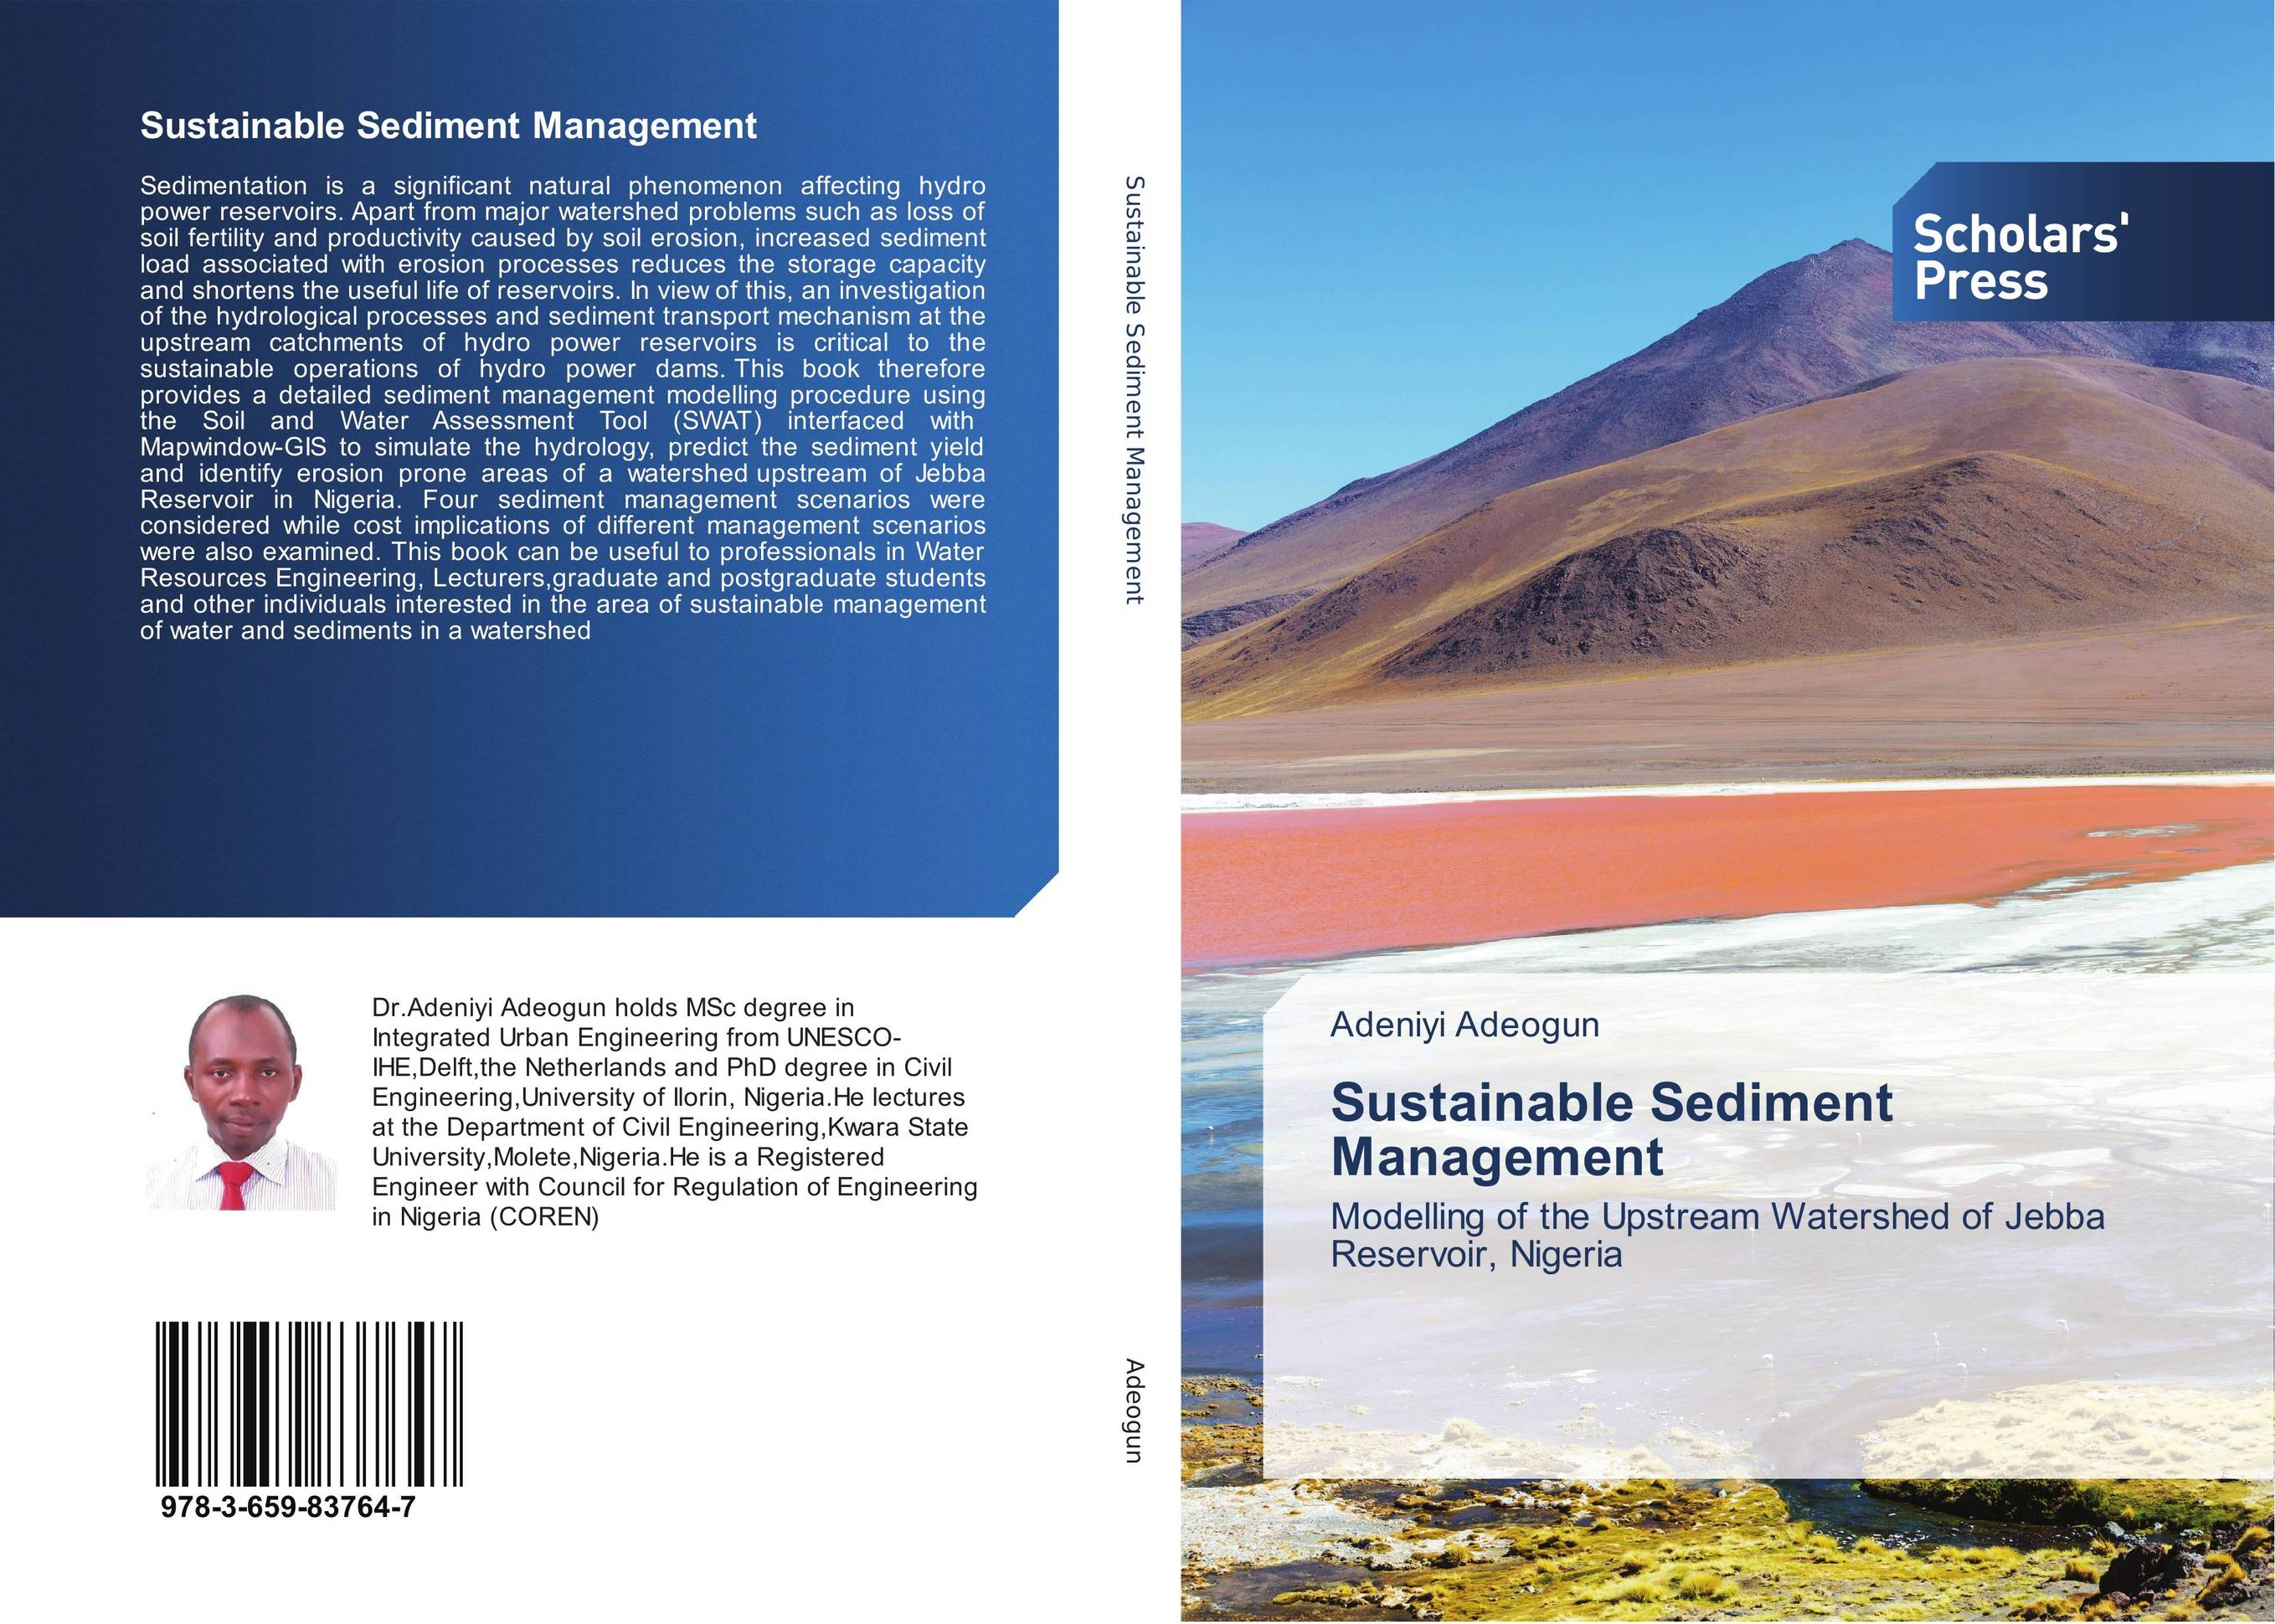 Sustainable Sediment Management